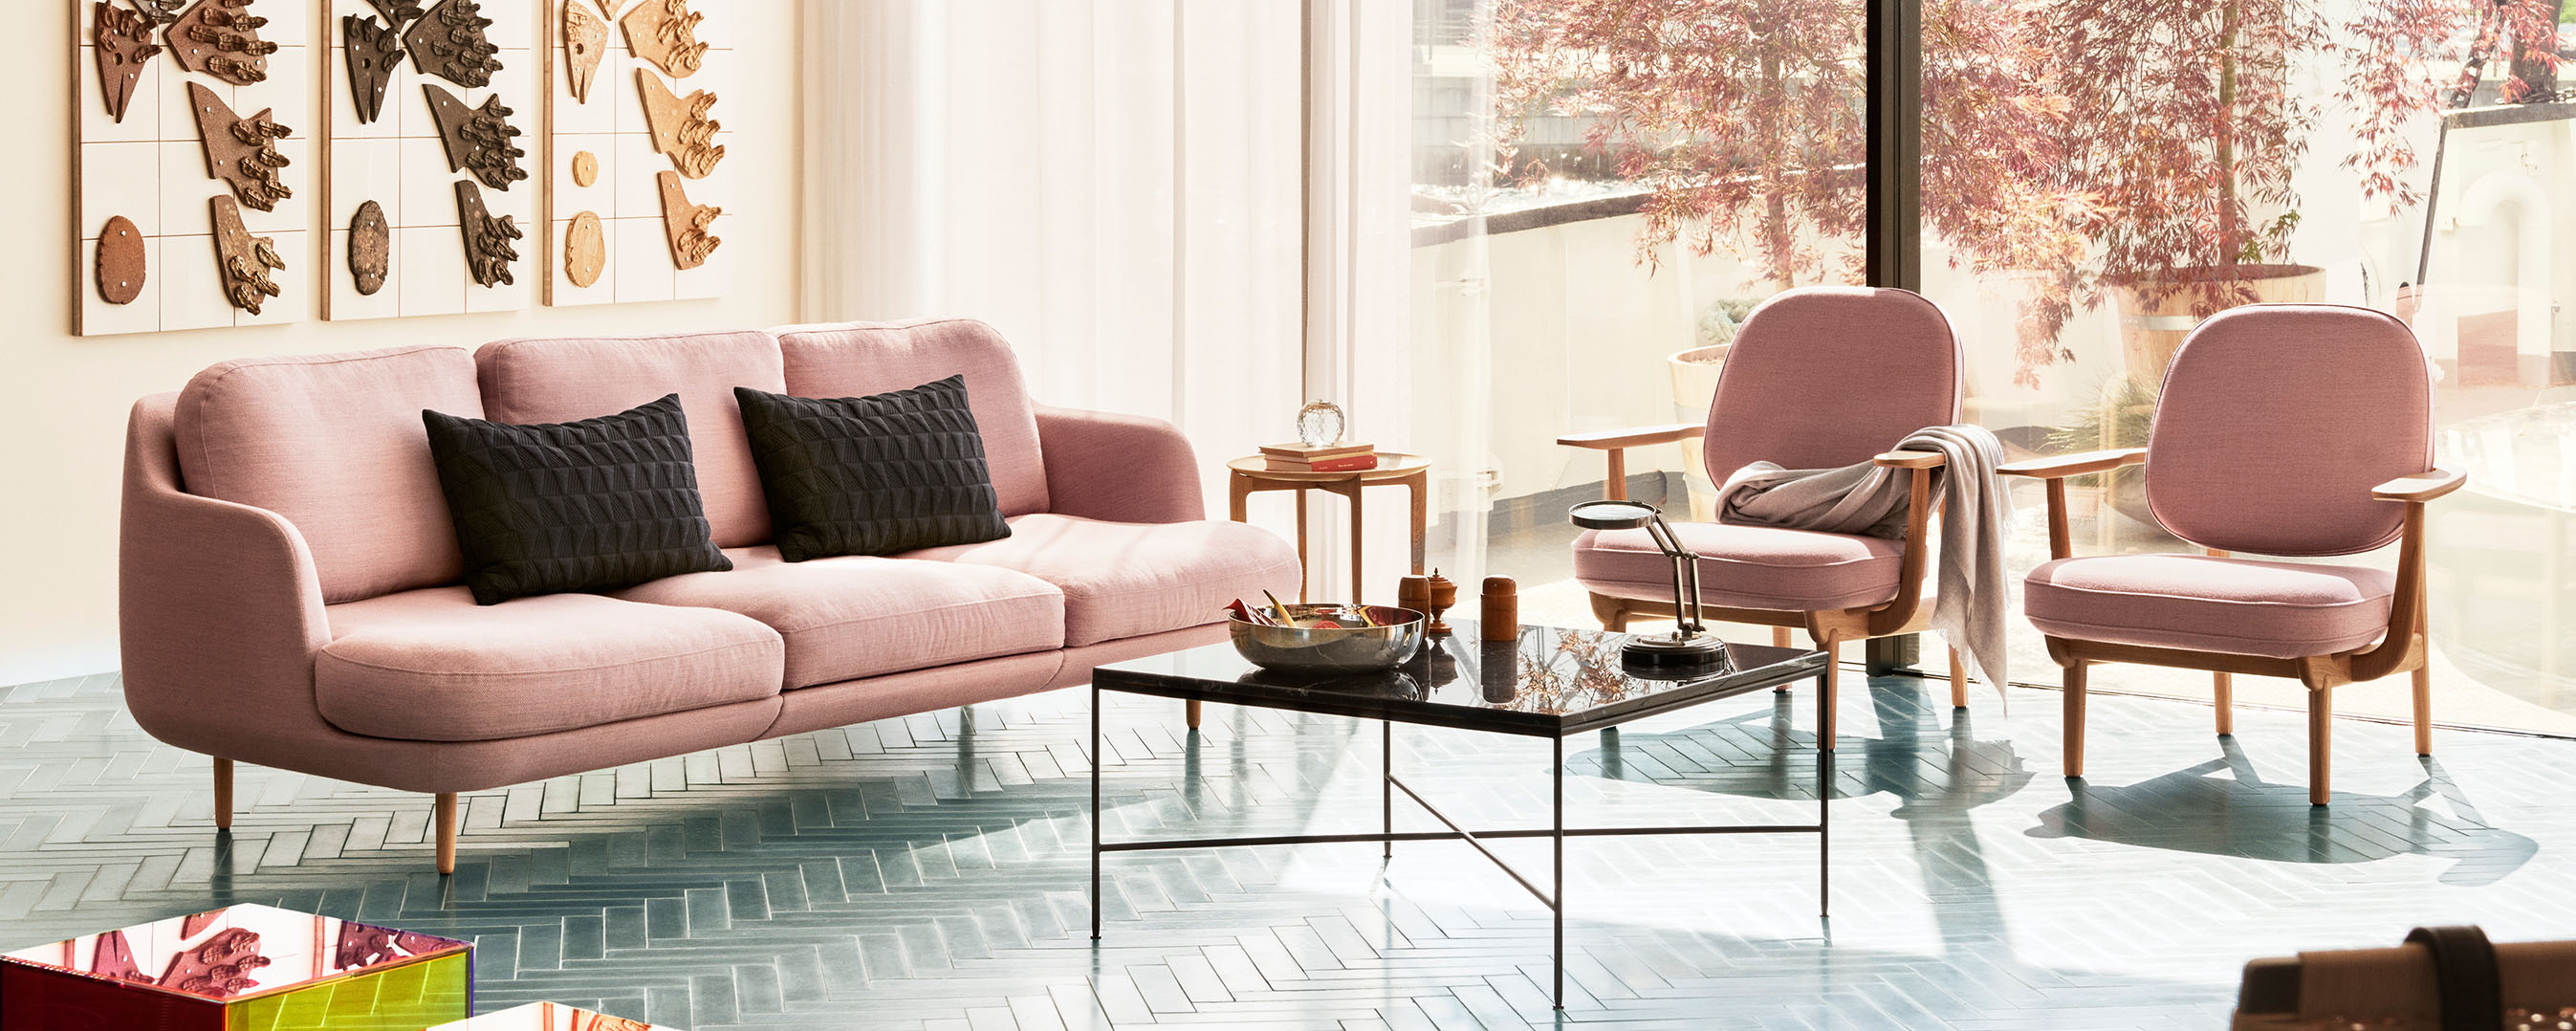 Papillon Interiors Winter Sale 2020 Promotion - Fritz Hansen Lune Sofa and Fred Lounge Chairs